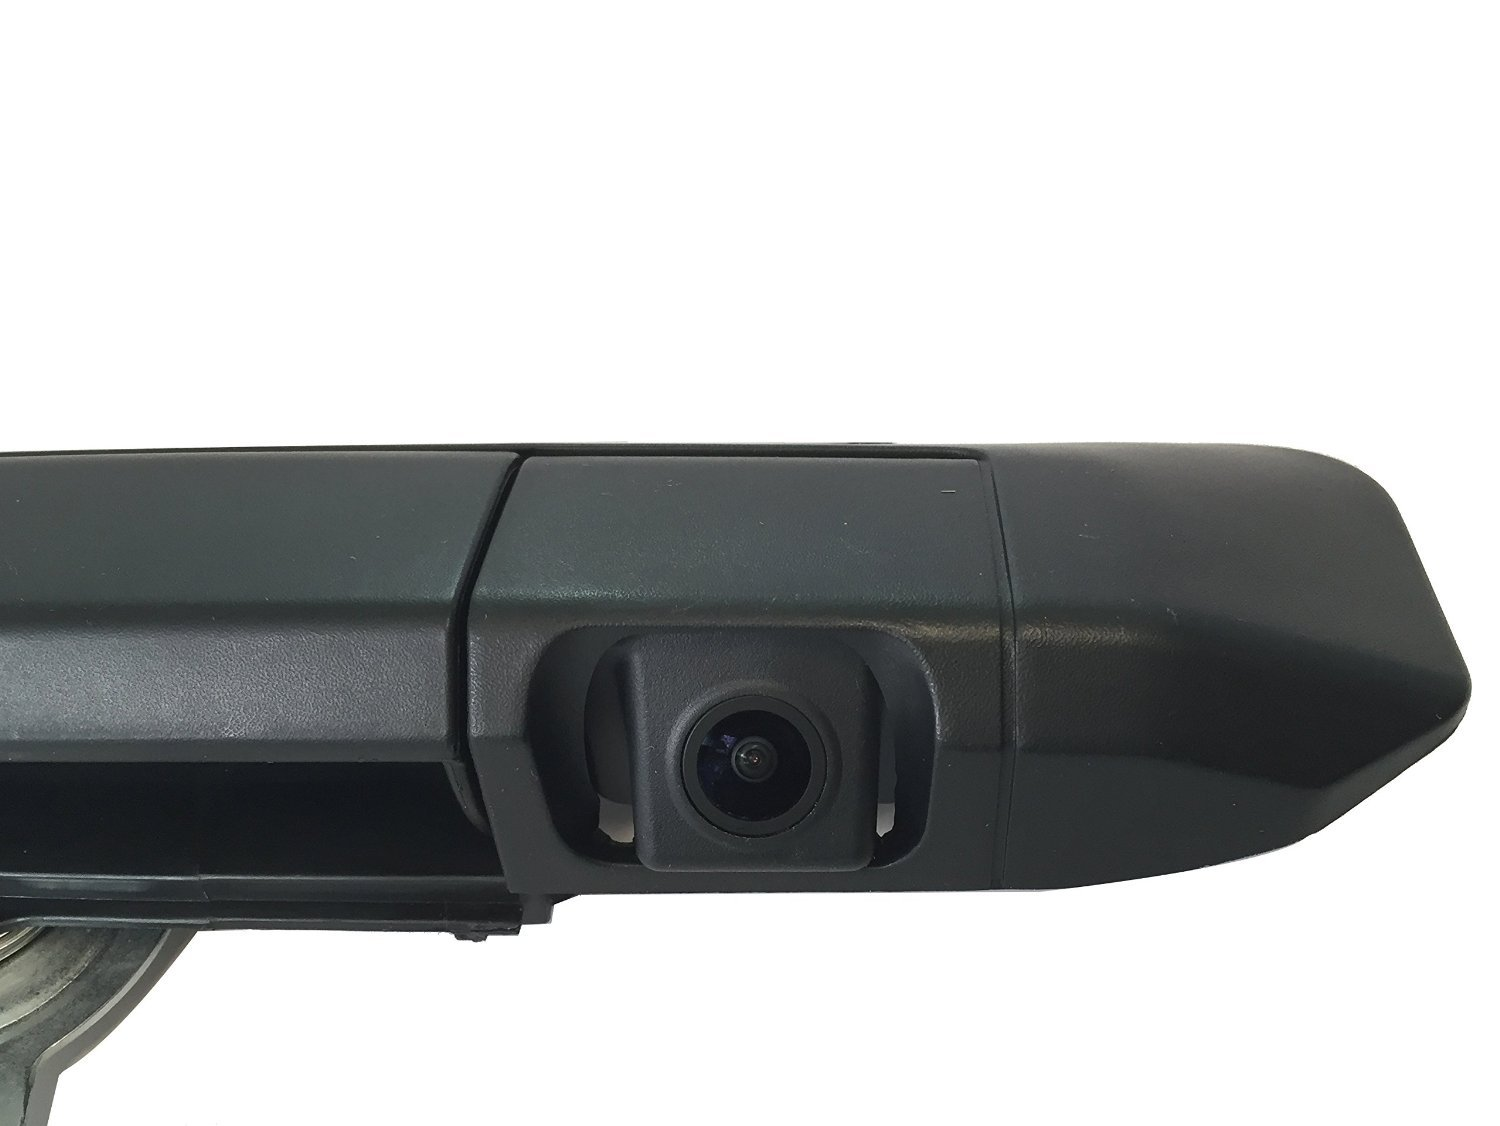 Master Tailgaters Toyota Tacoma 2005-2014 Black Tailgate Backup Reverse Handle with Camera by Master Tailgaters (Image #2)